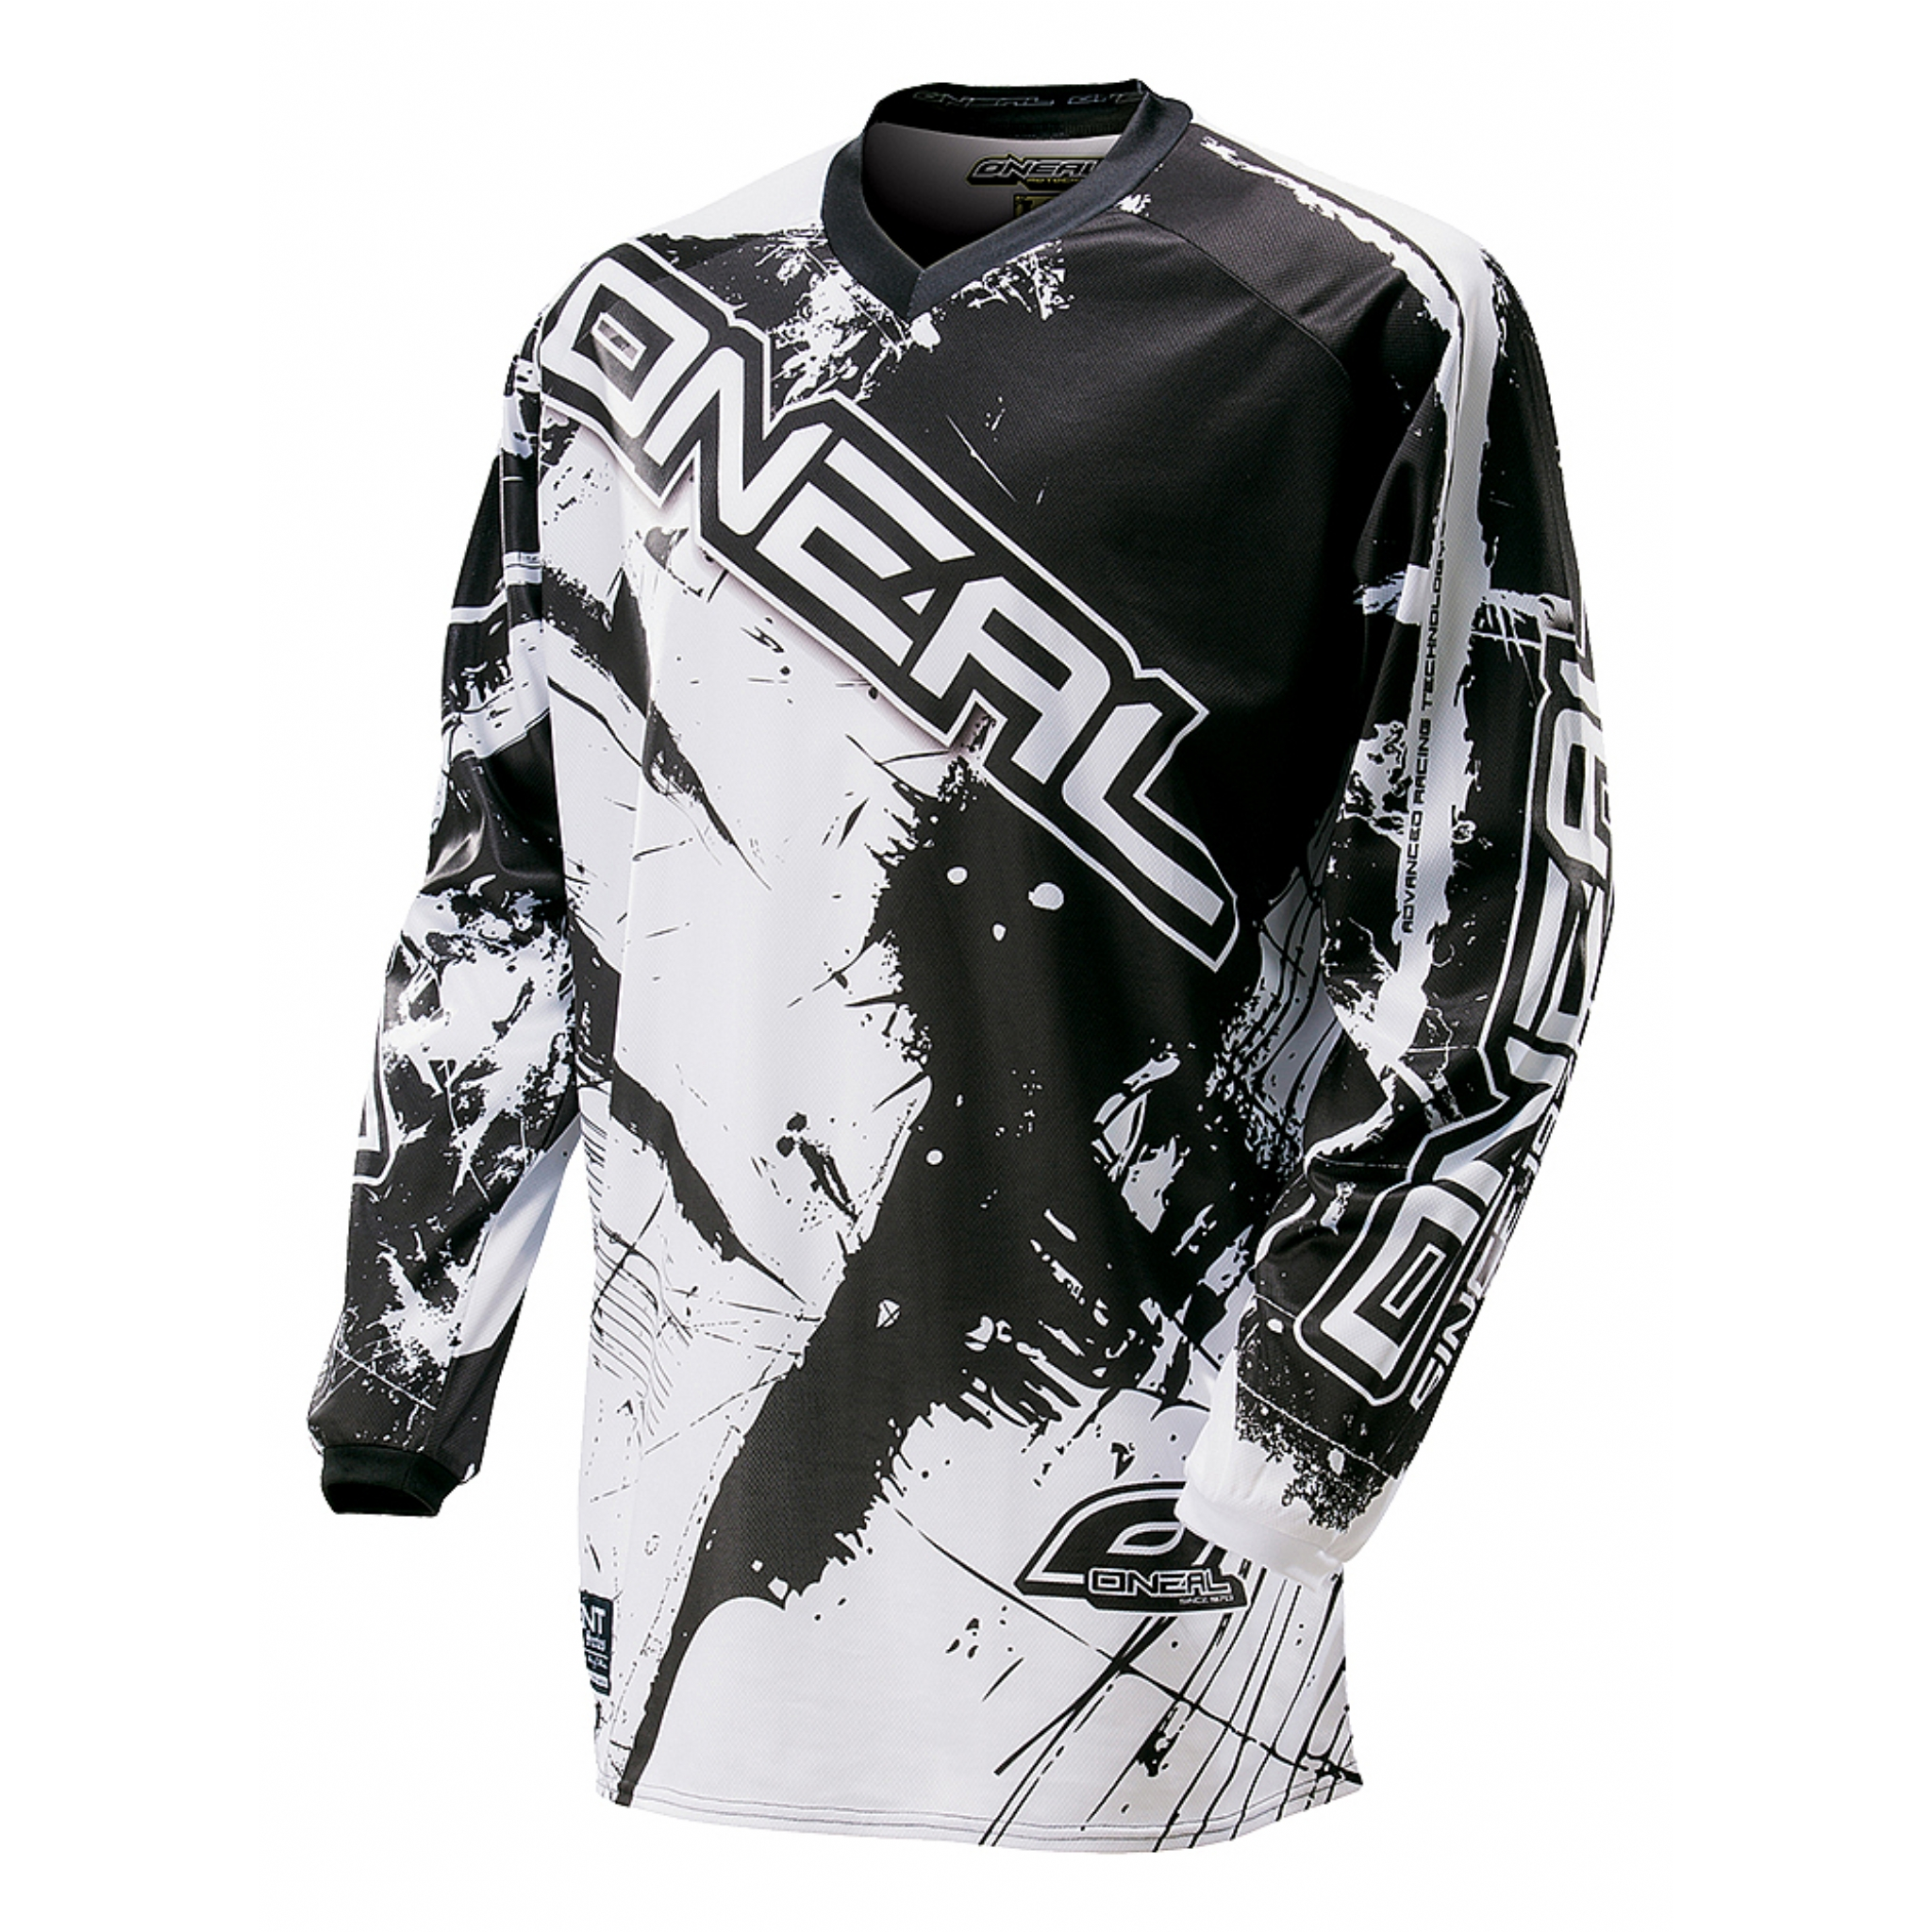 Джерси Oneal Element Shocker black/white XXL, 0024S-616